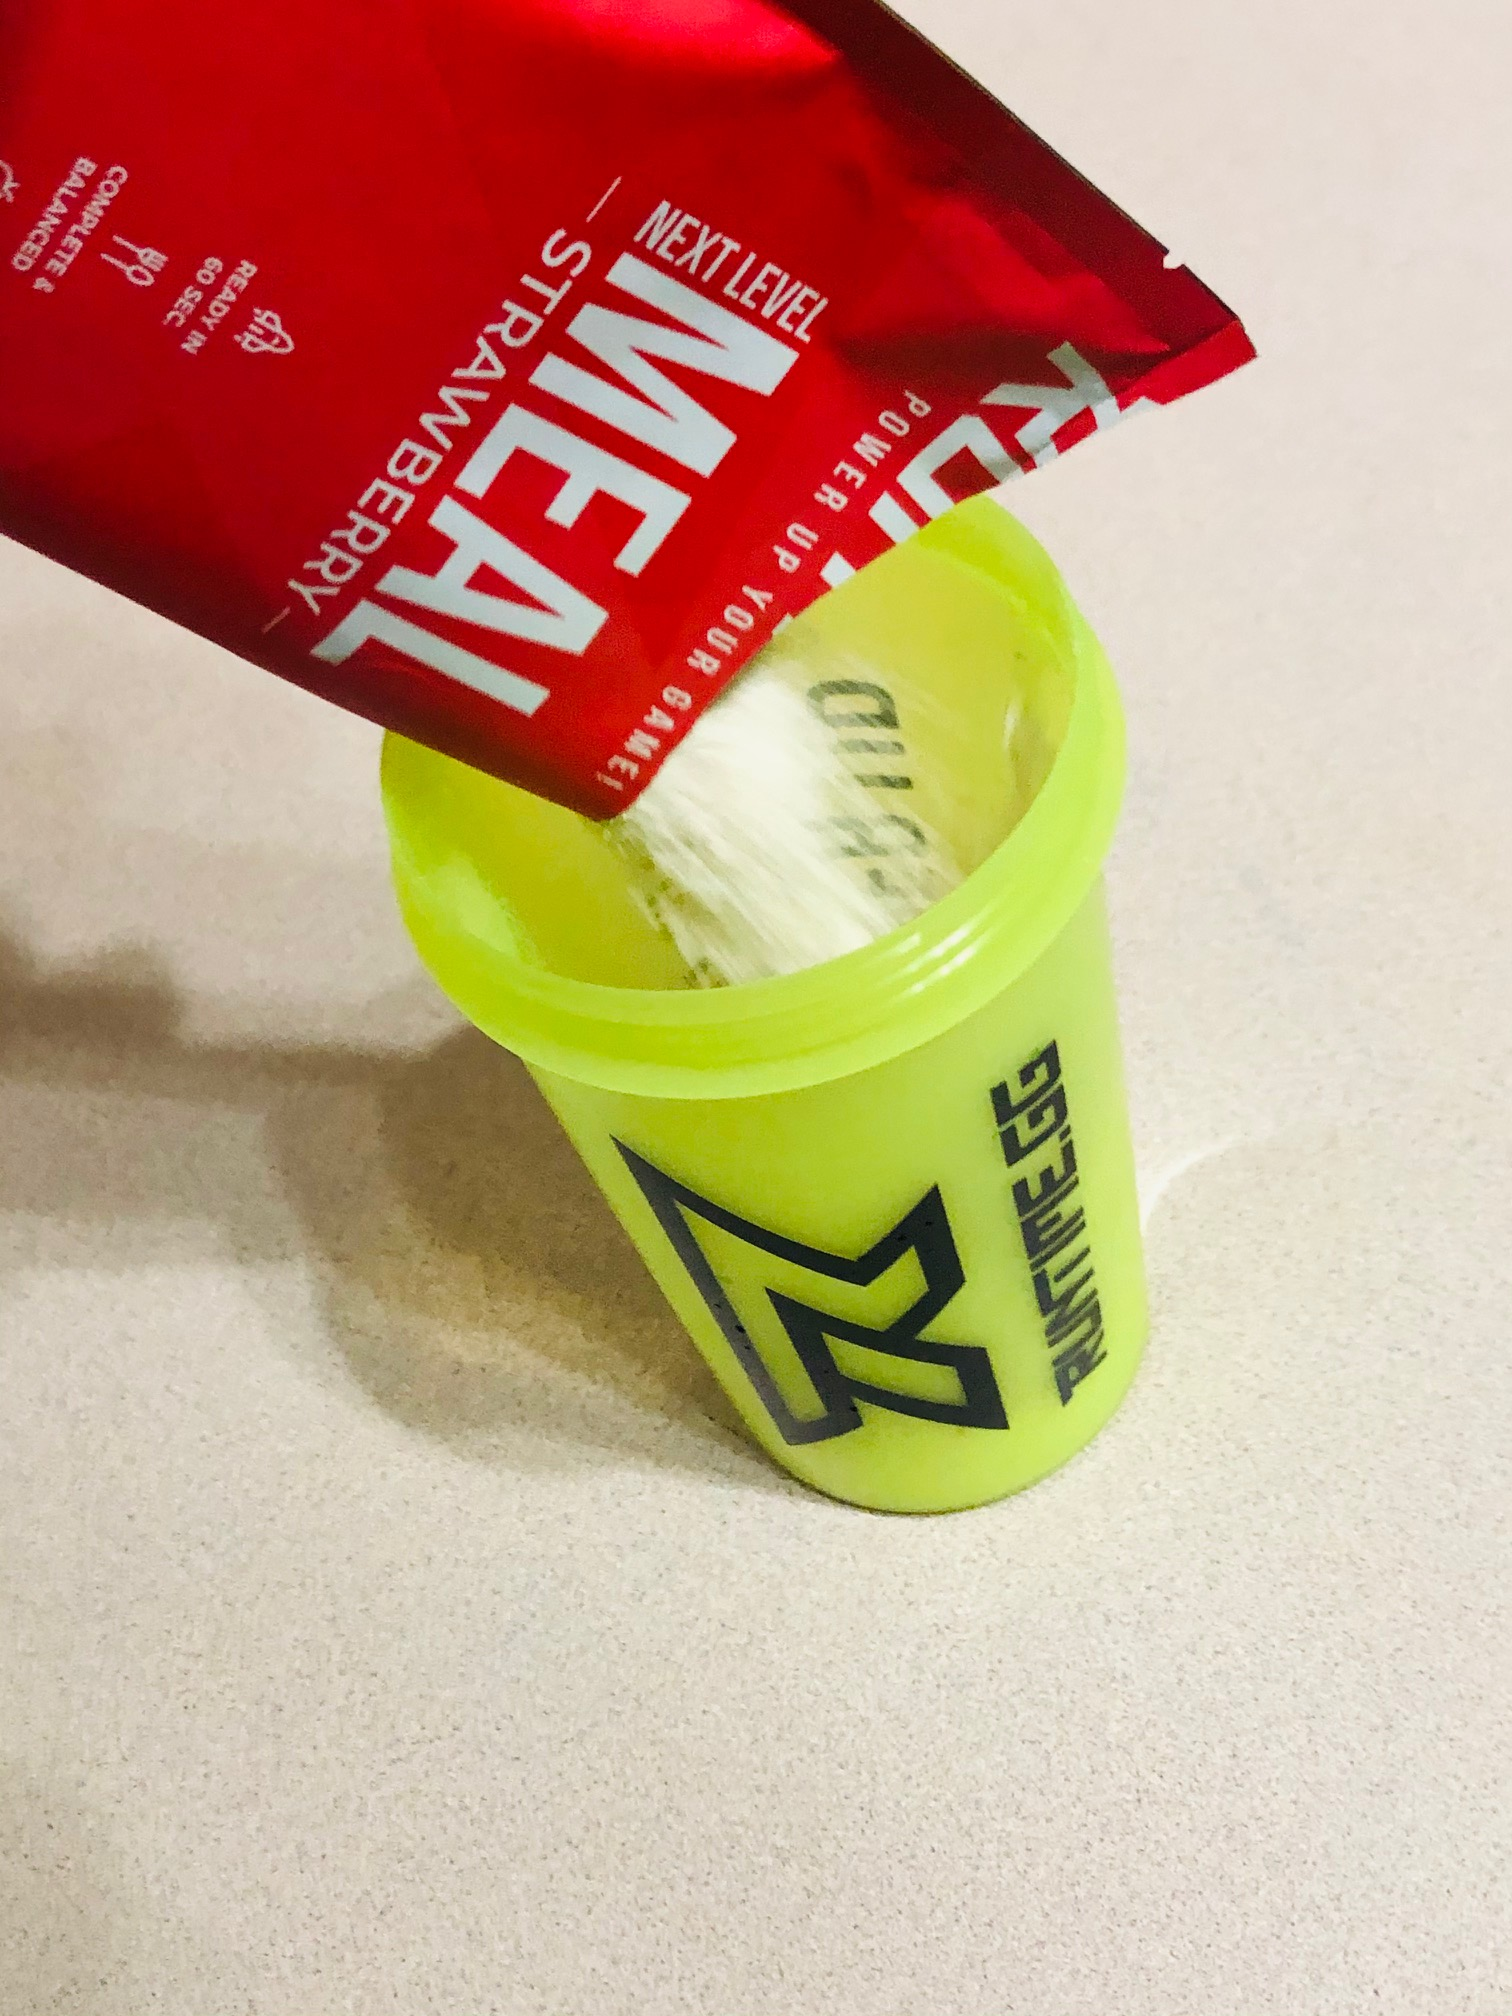 Check Out Meal Replacements and Other Healthy Essentials from Runtime